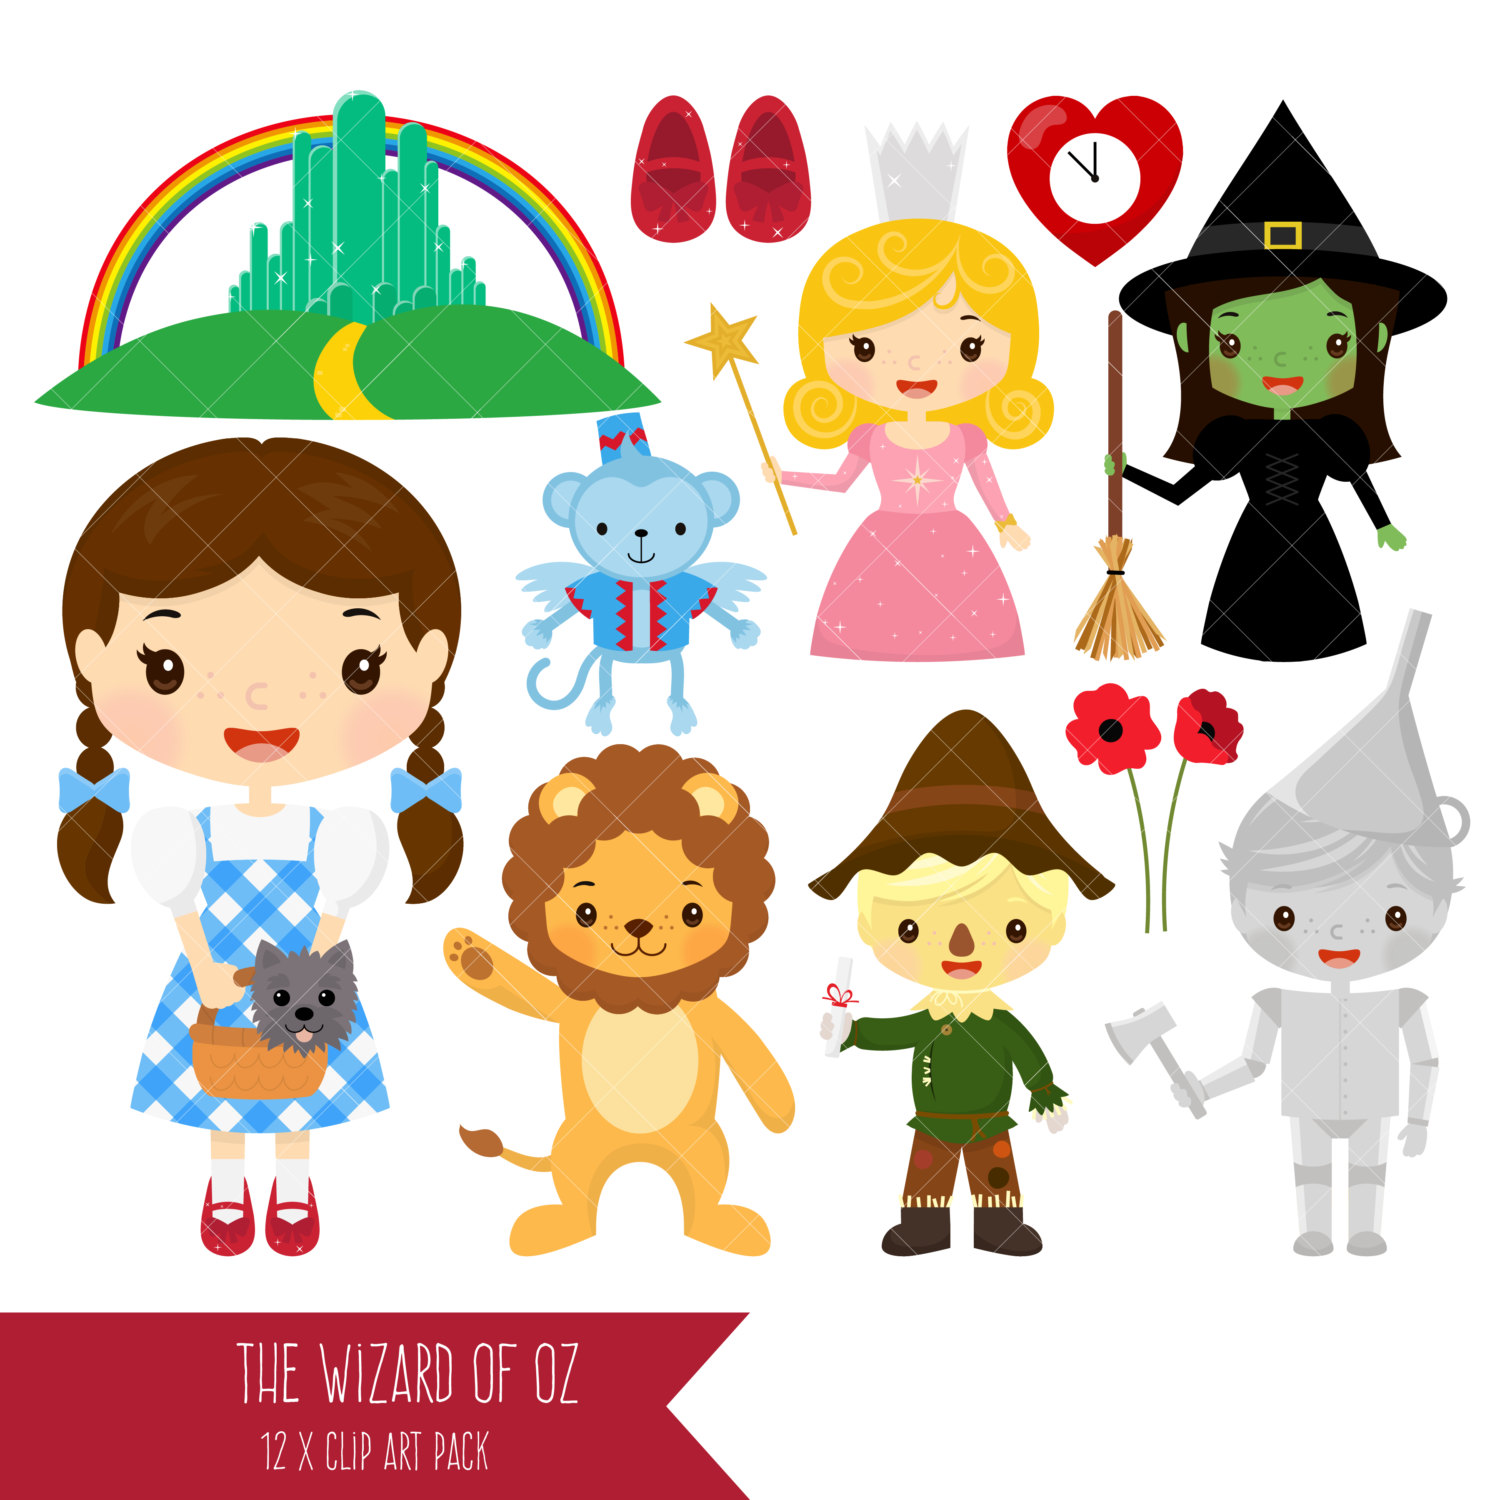 Wizard Of Oz clipart wicked witch / of Man Oz a